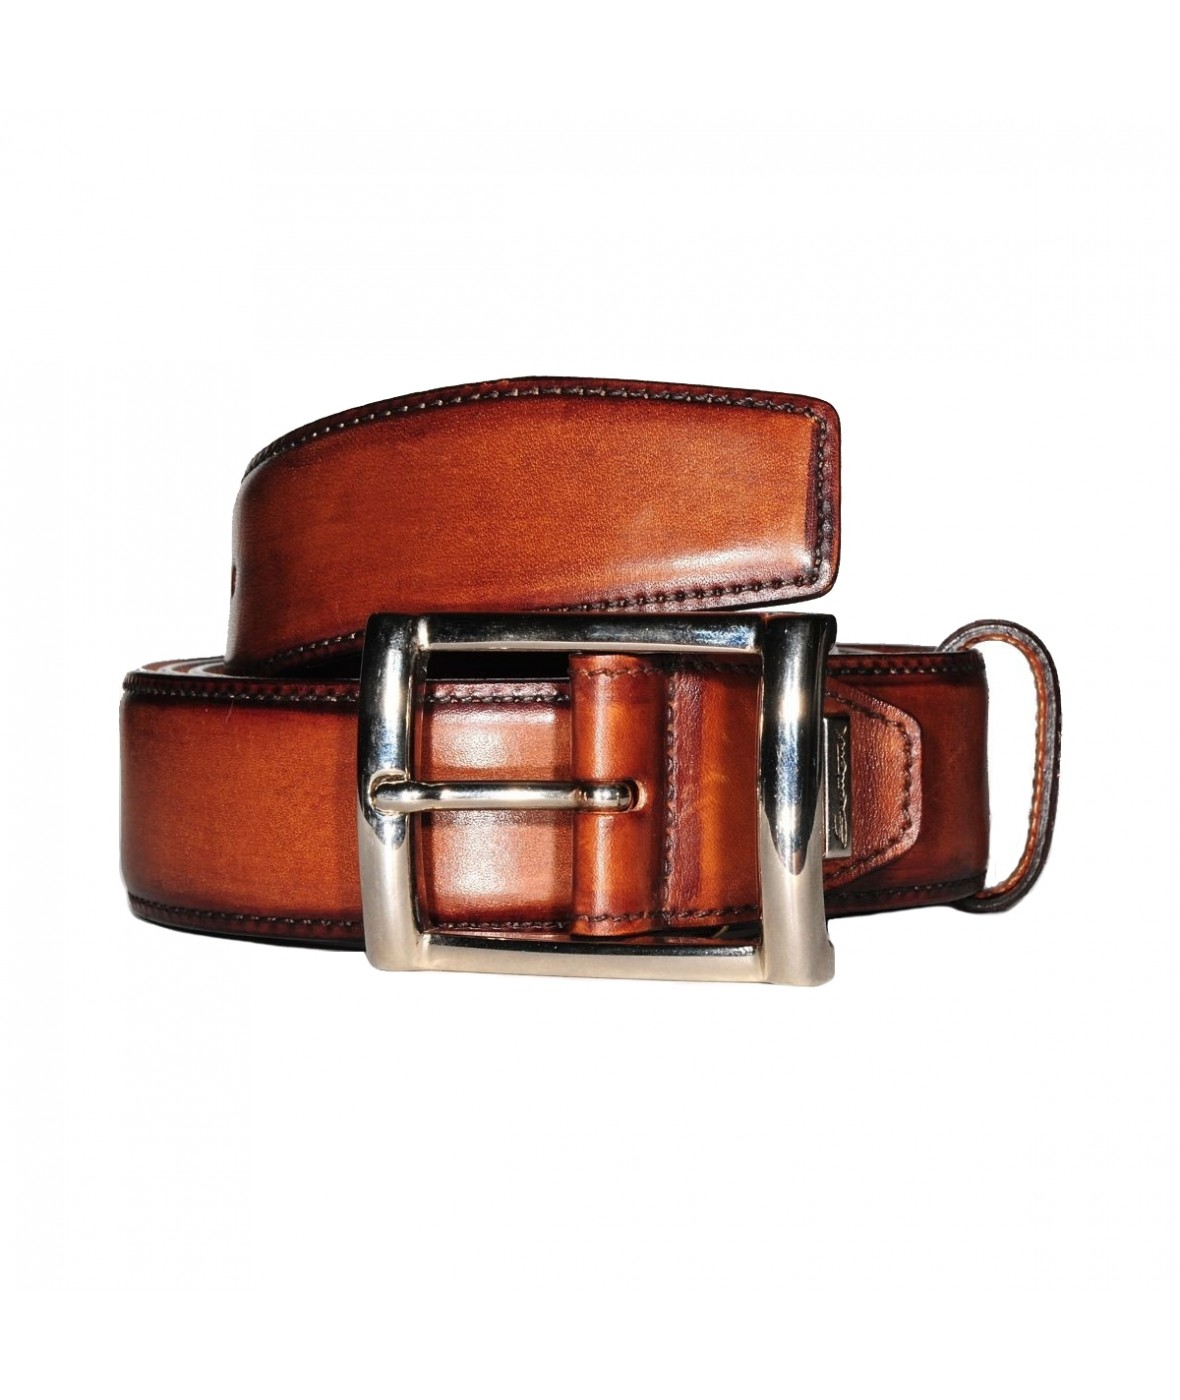 Santoni Belt Leather (358)